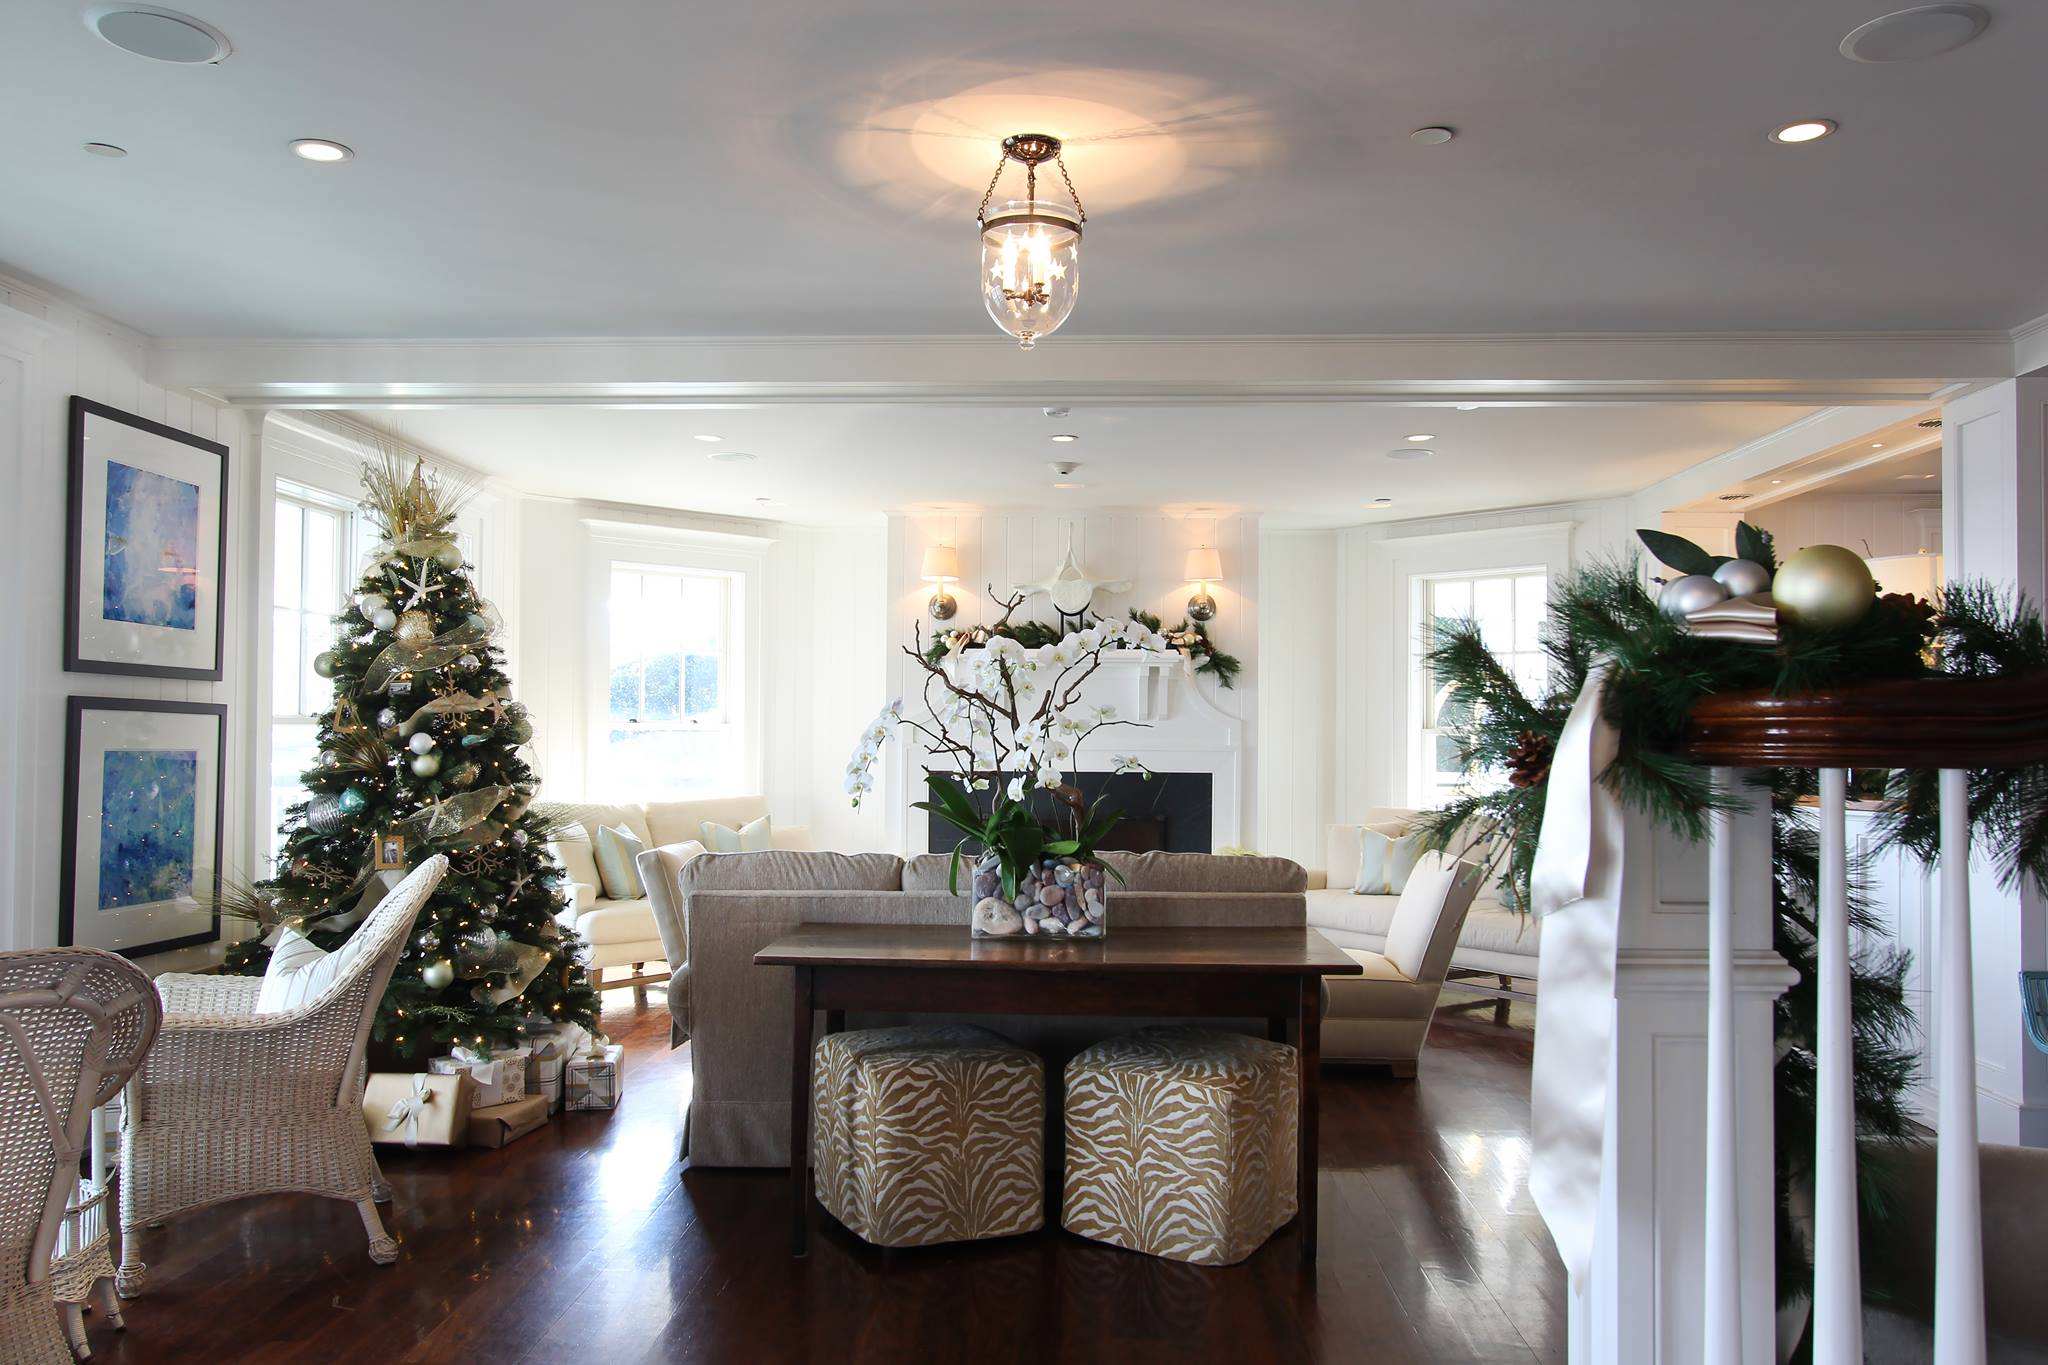 Deck the halls with the help of Lisa Pyden